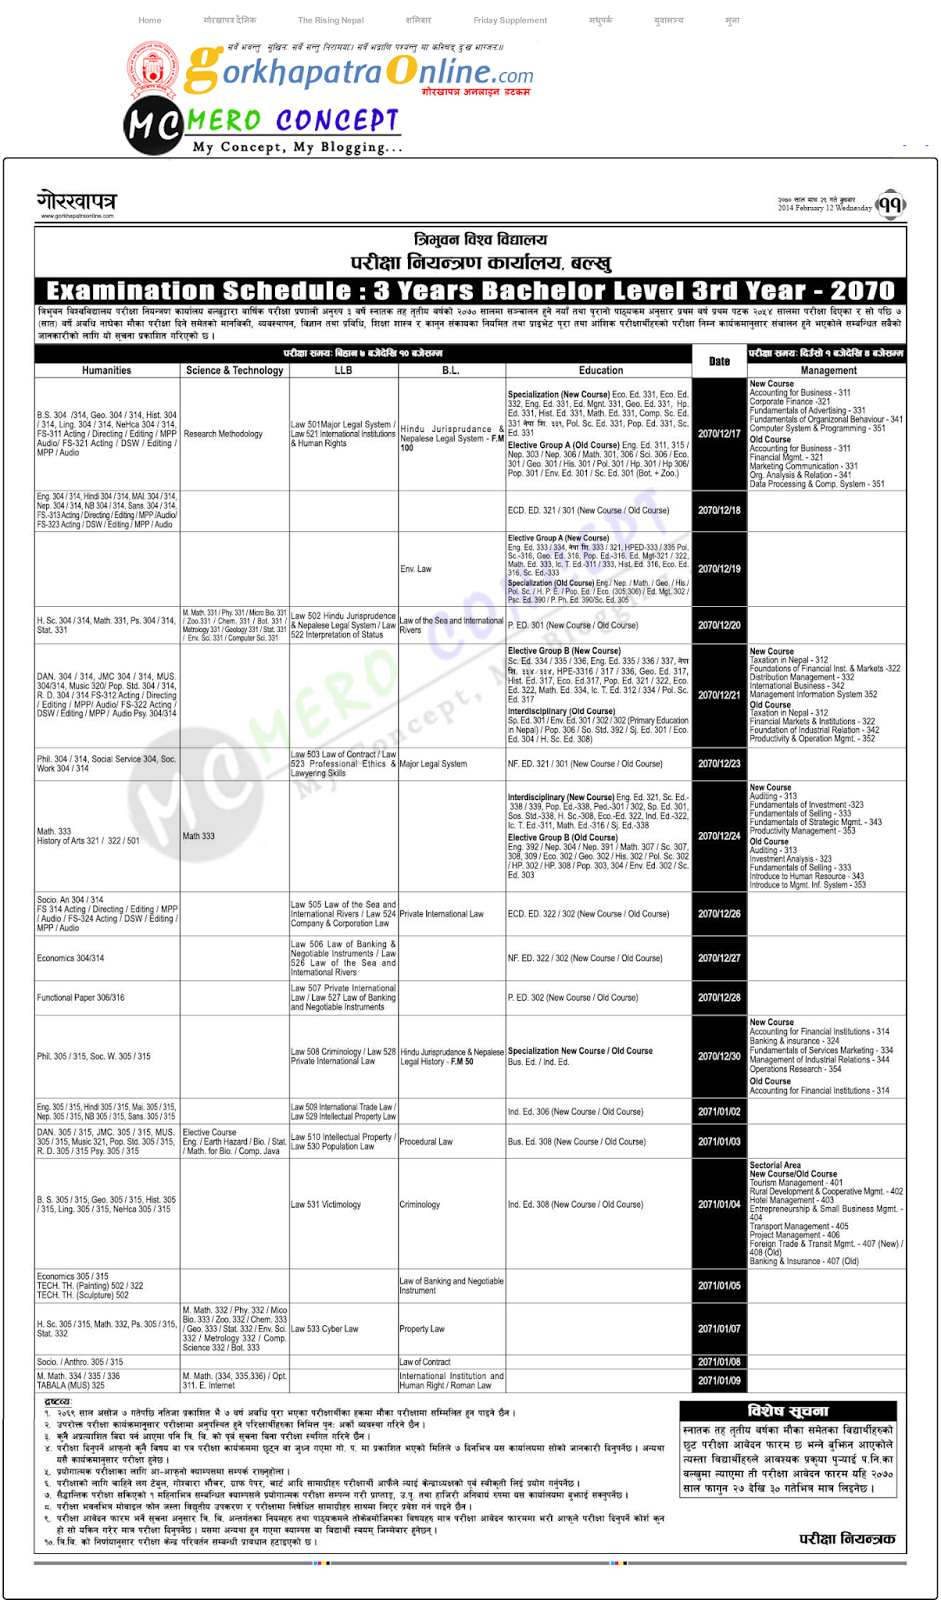 3 Years Bachelor Level 3rd Year (BA. B.Sc, LLB, BL, B.Ed and BBS)-2070 Examination Routine